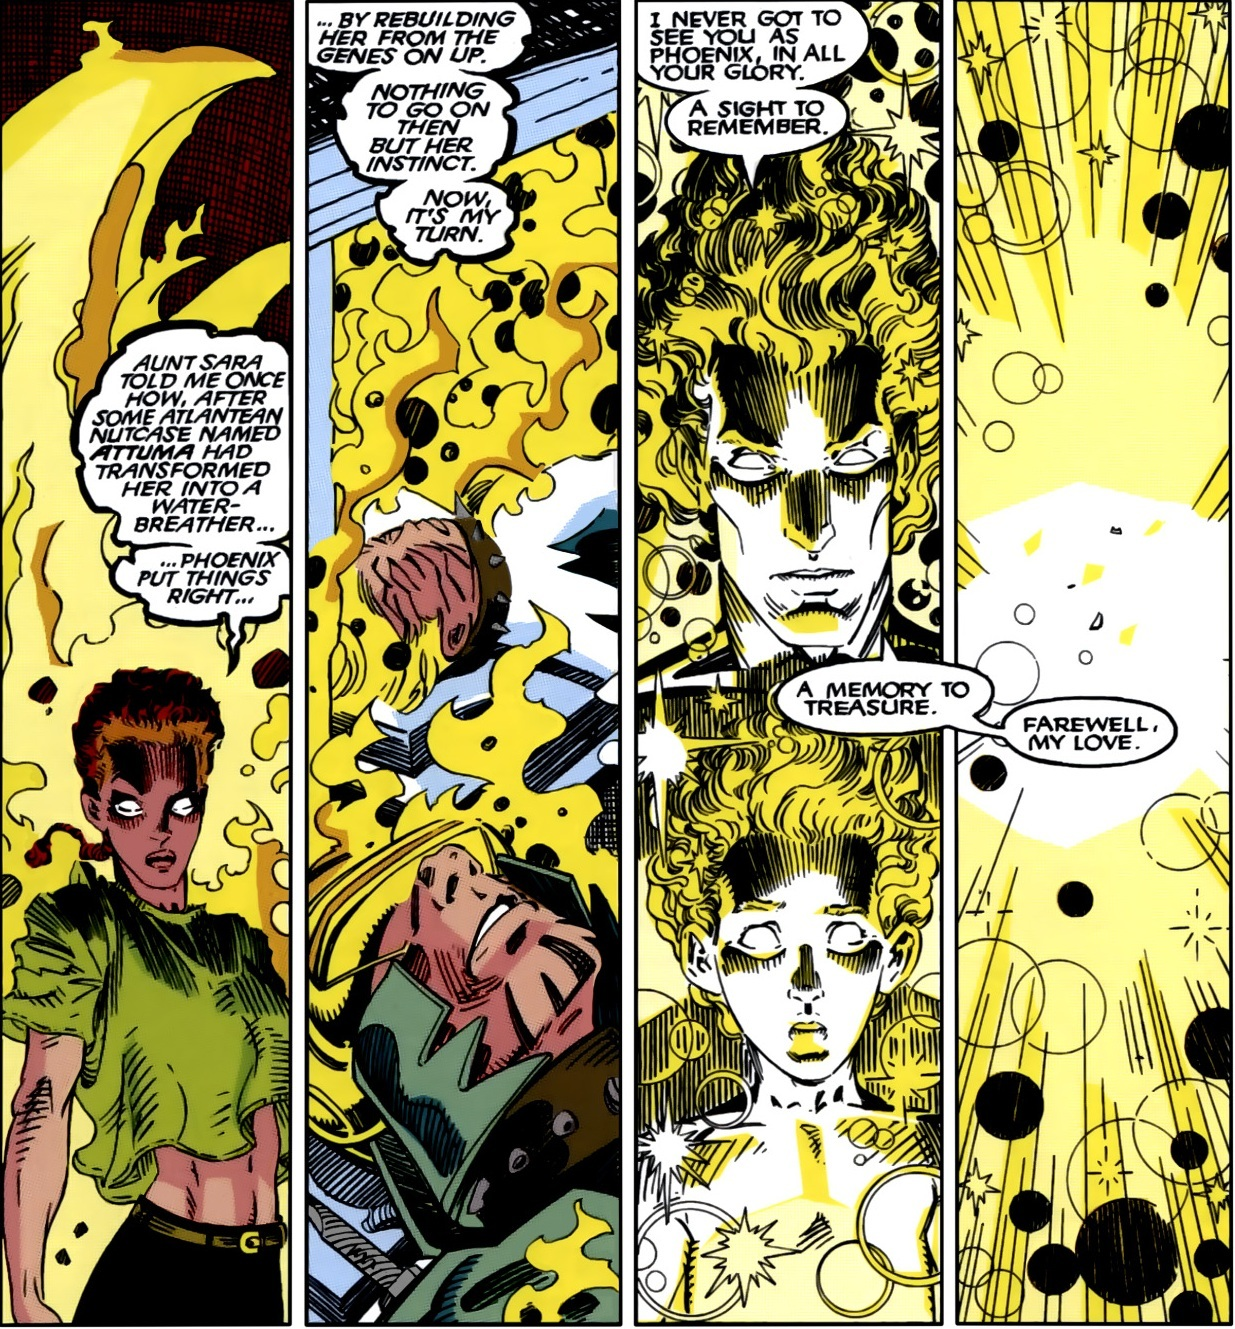 Reconstructs Cyclops and Sue Storm on a genetic level after Ahab had their genes and minds altered and twisted into hounds using instinct and a story she once heard about Jean- Days of Future Present